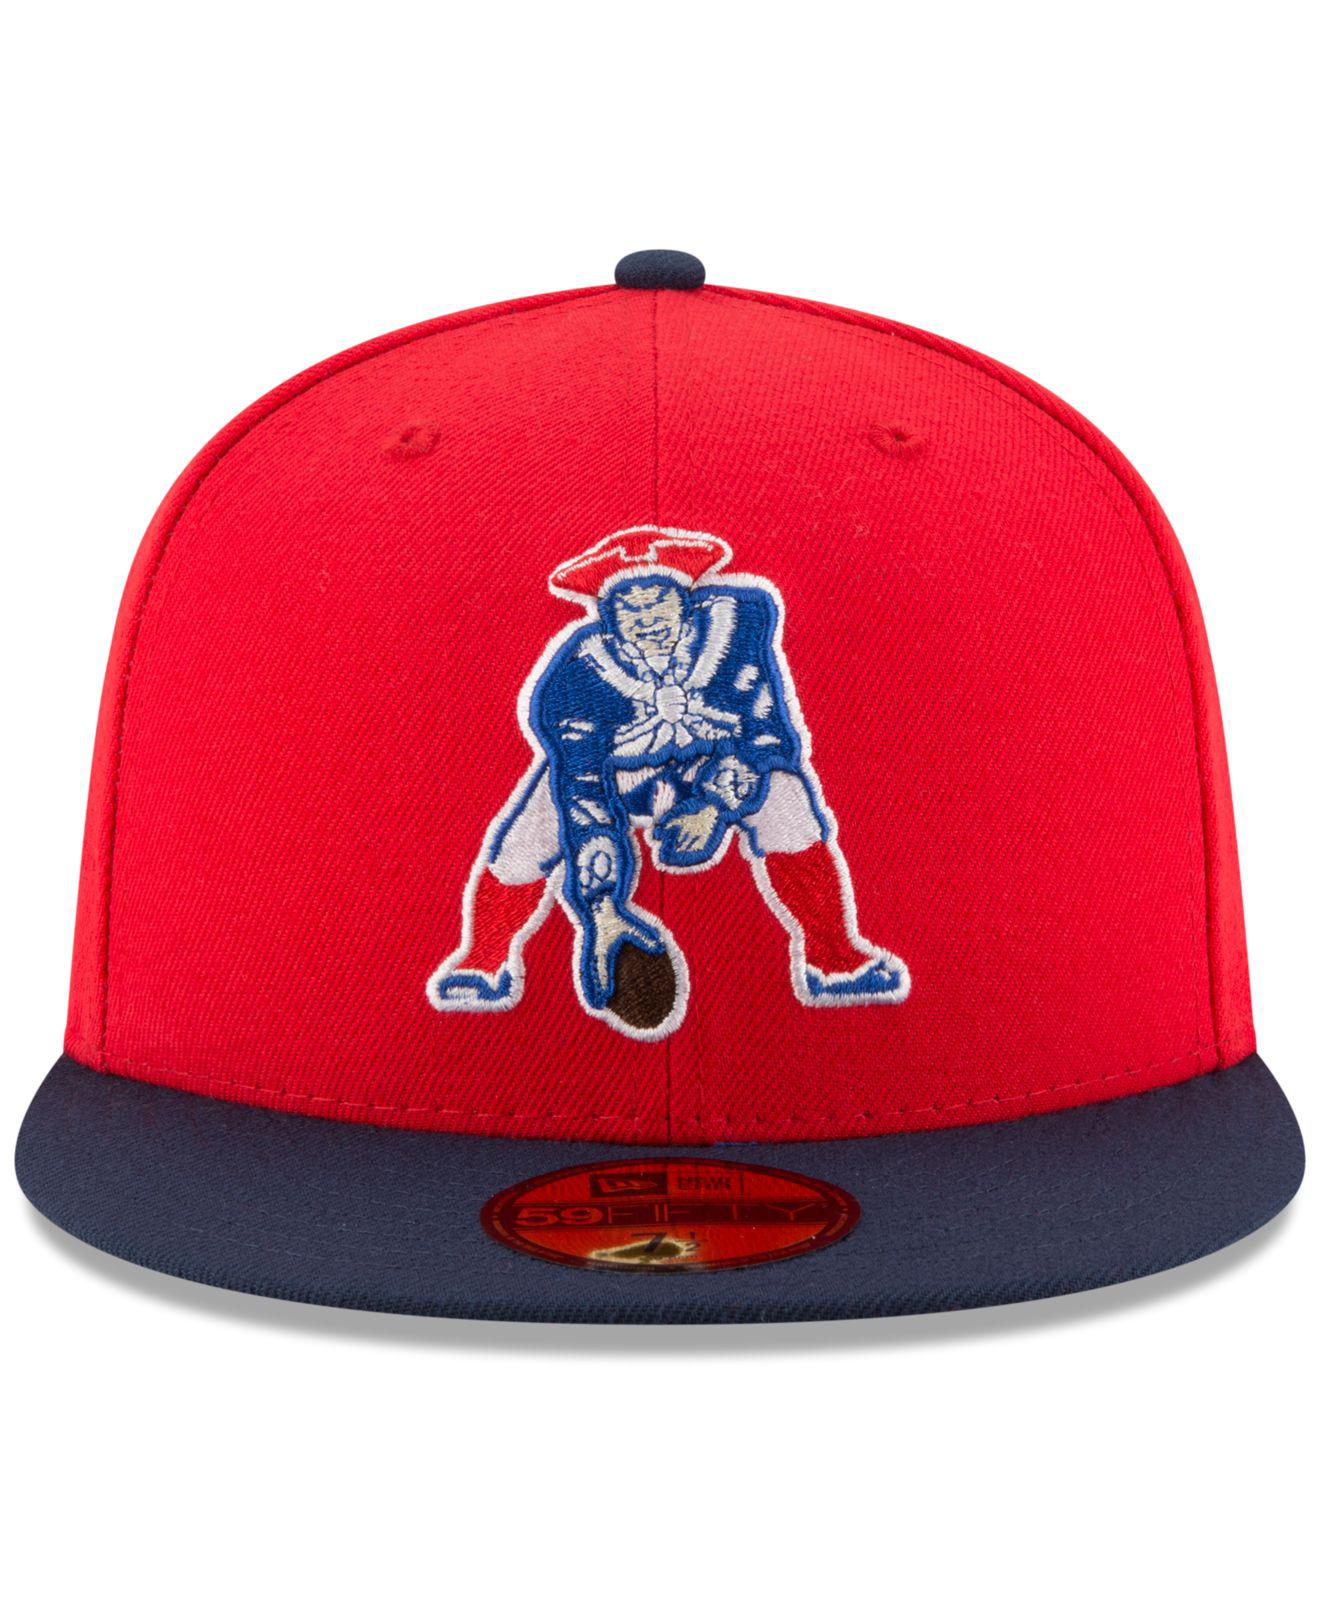 Lyst - KTZ New England Patriots Team Basic 59fifty Cap in Red for Men 41d4165a8